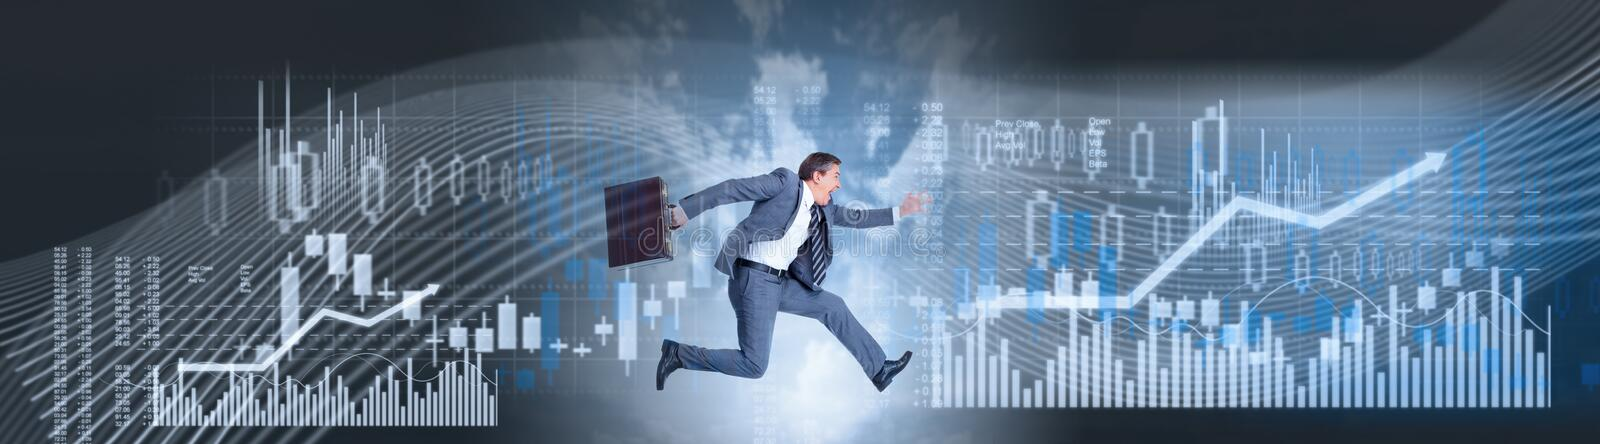 Business background stock photos